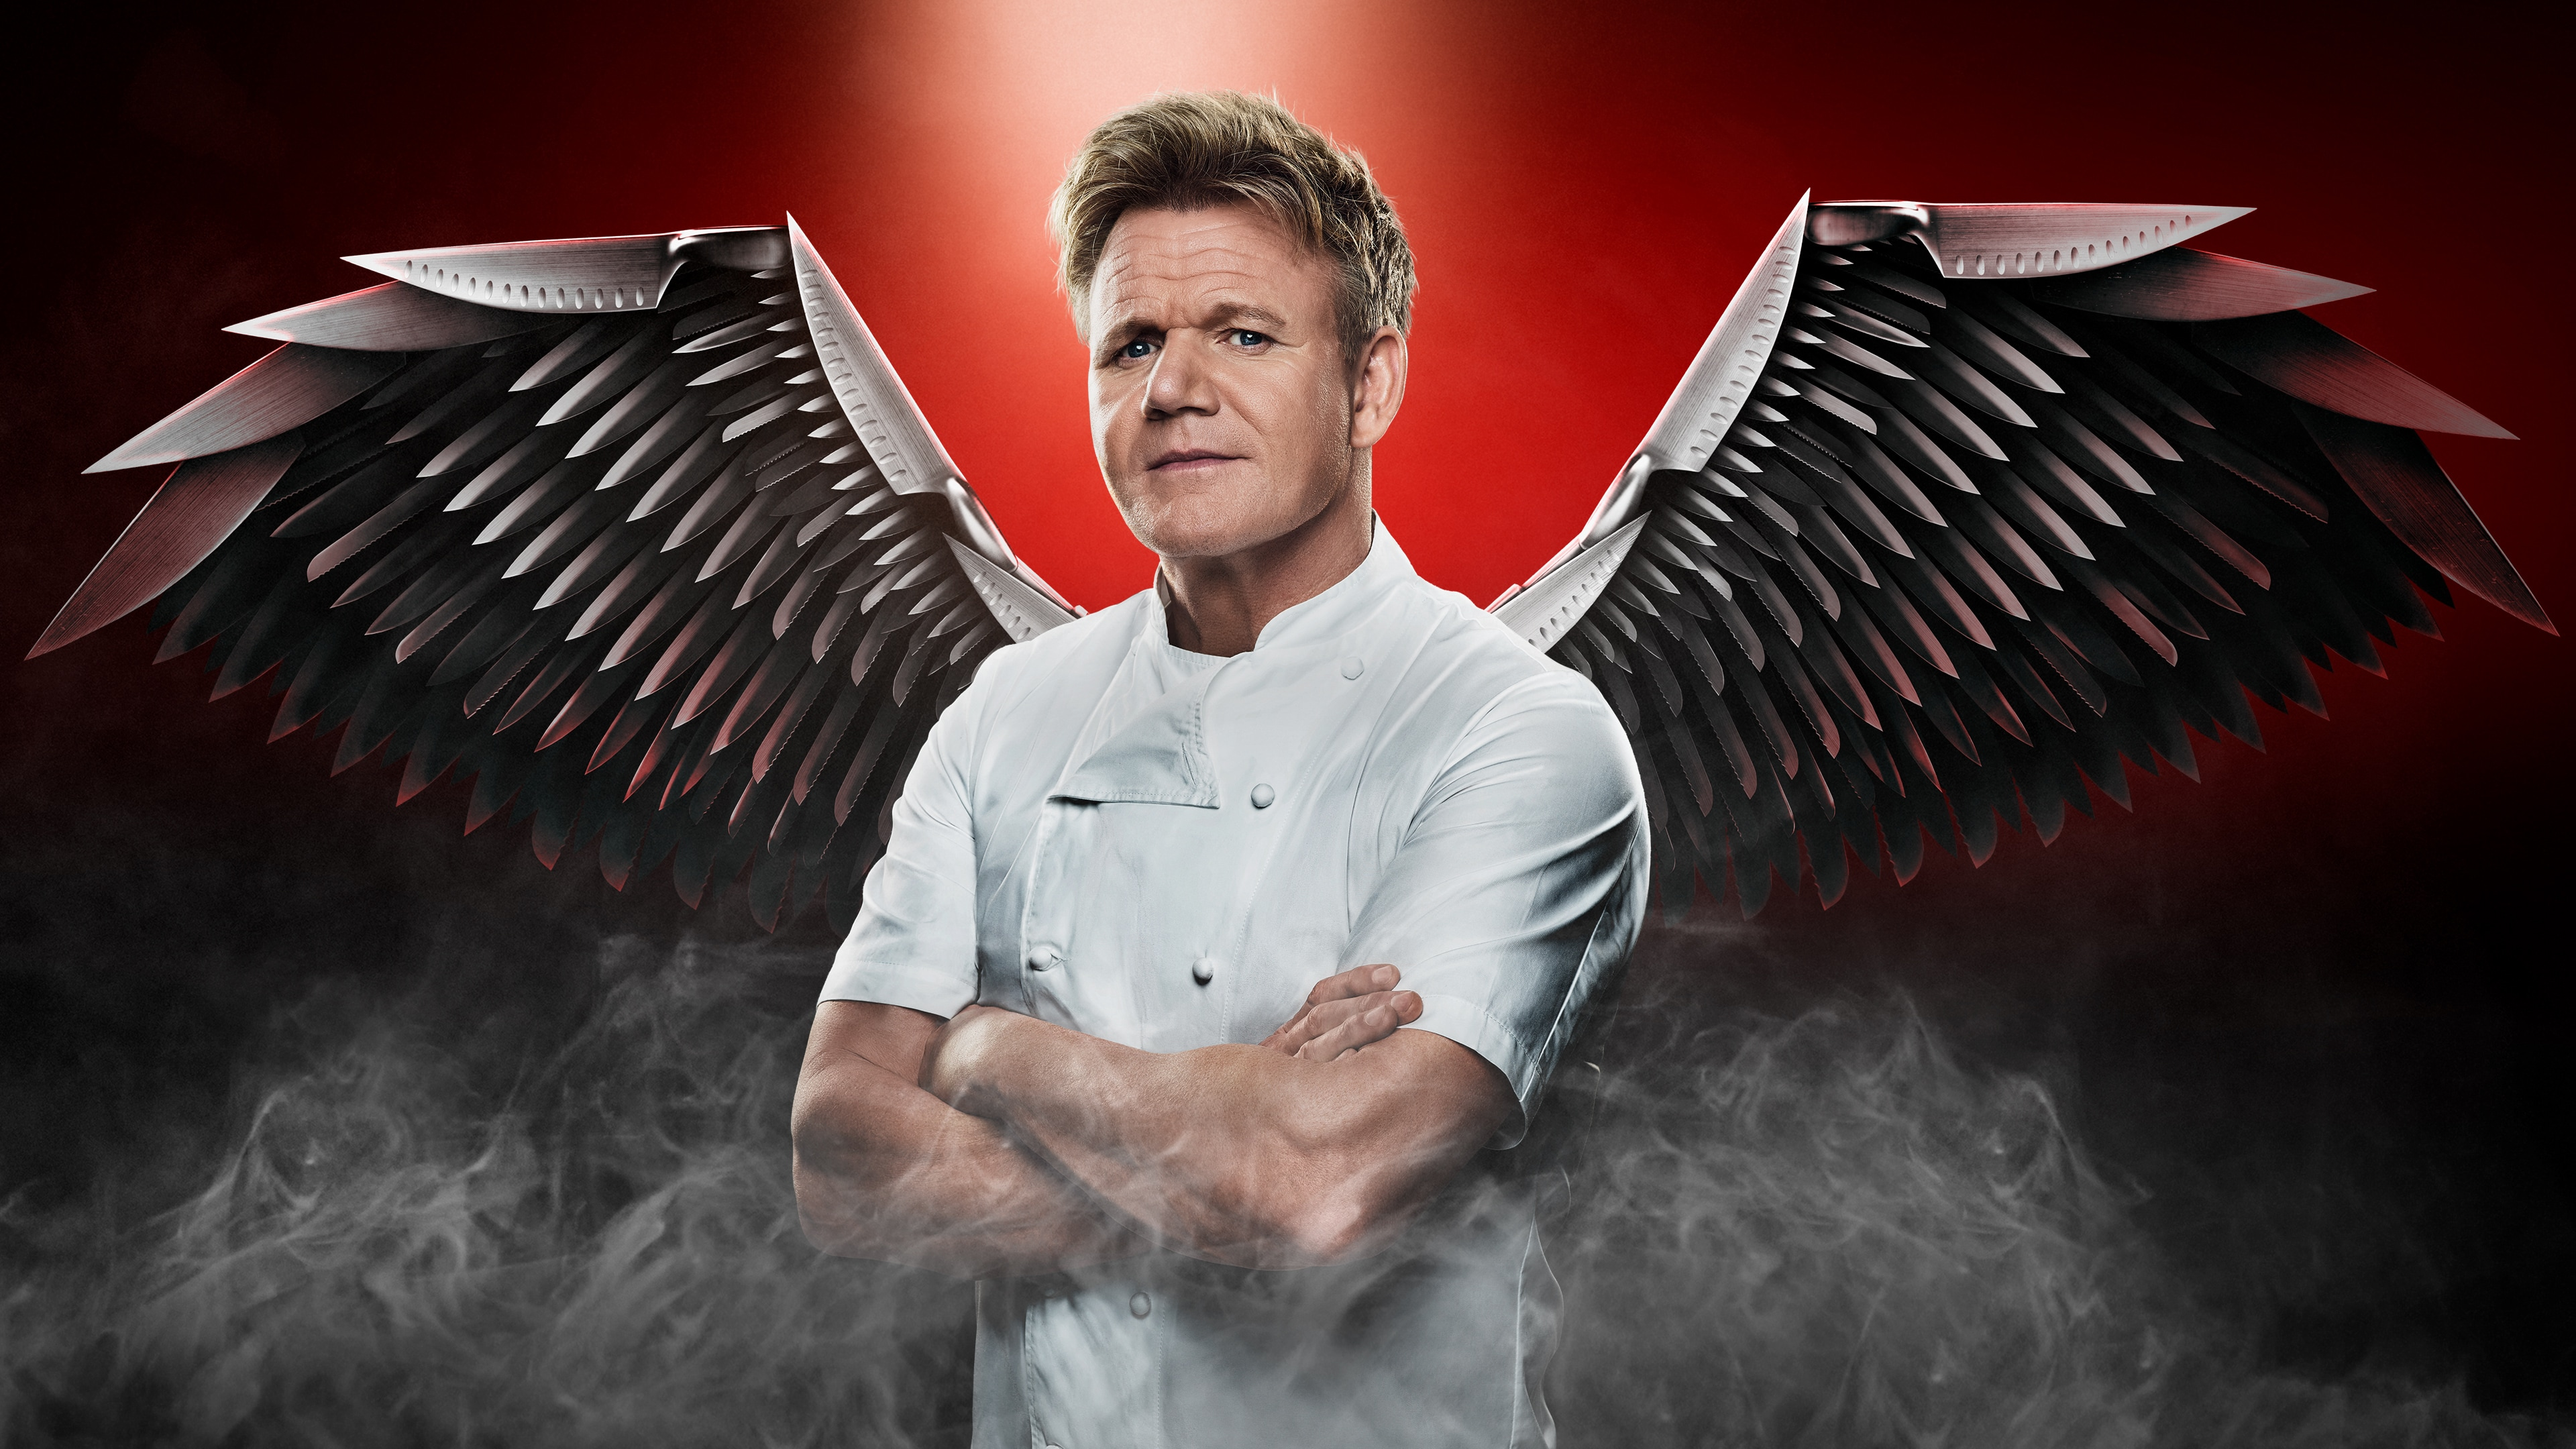 Canal Cocina Gordon Ramsay Watch Full Episodes Of Hell S Kitchen With Gordon Ramsay On Fox